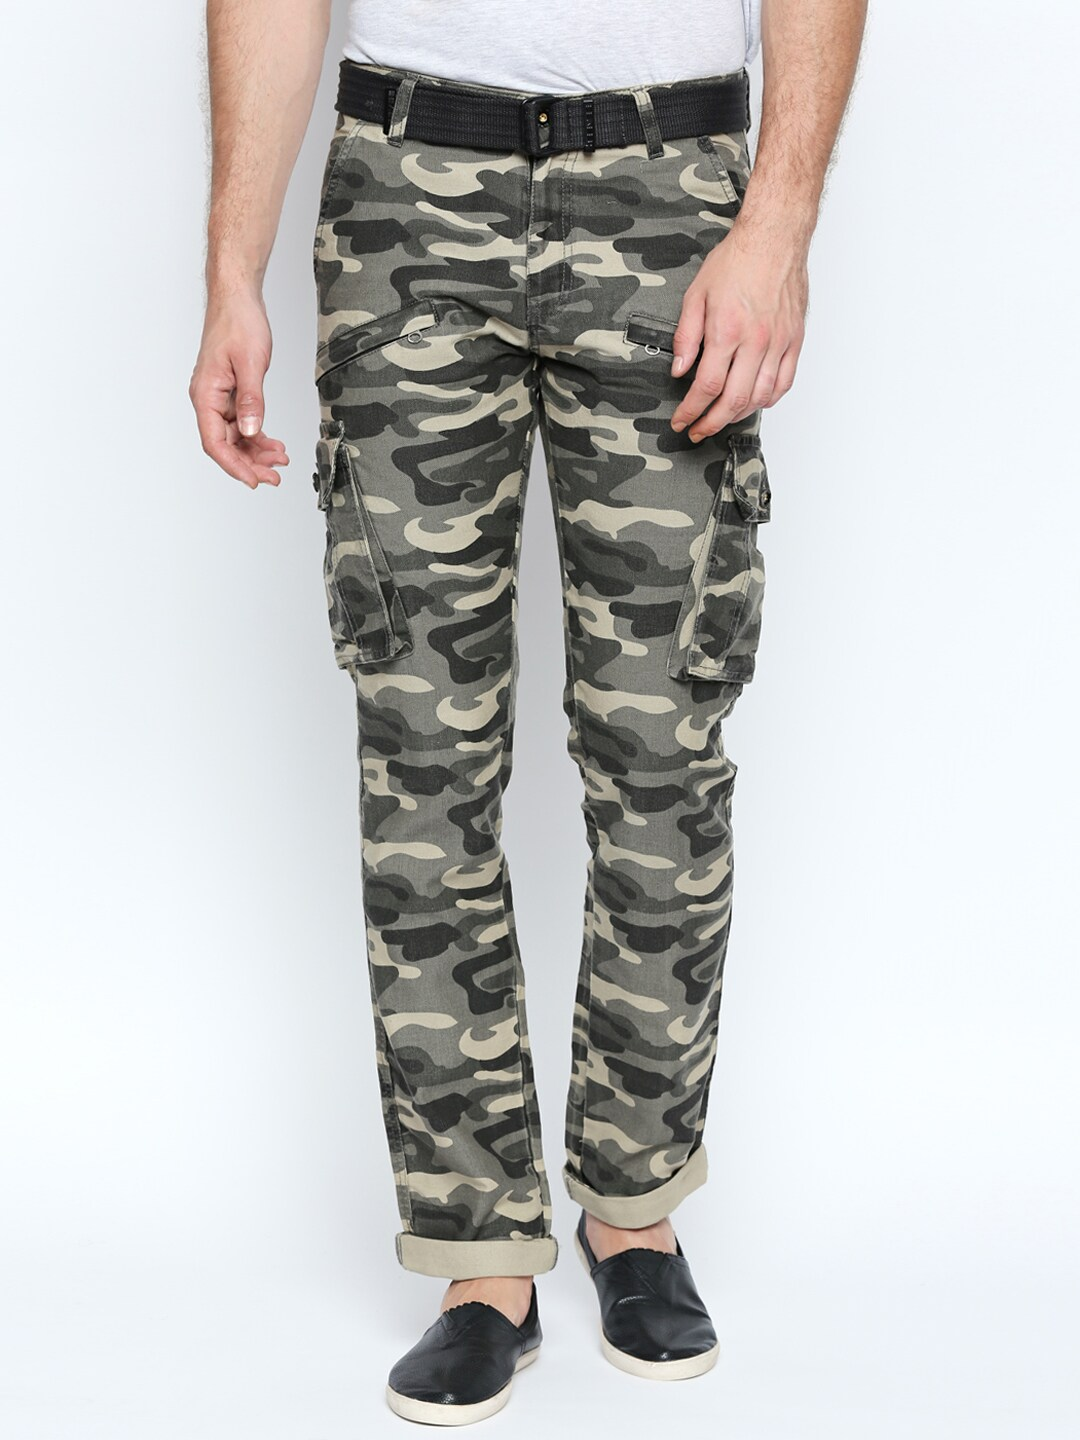 2019 year for girls- Skinny Camouflage jeans for juniors